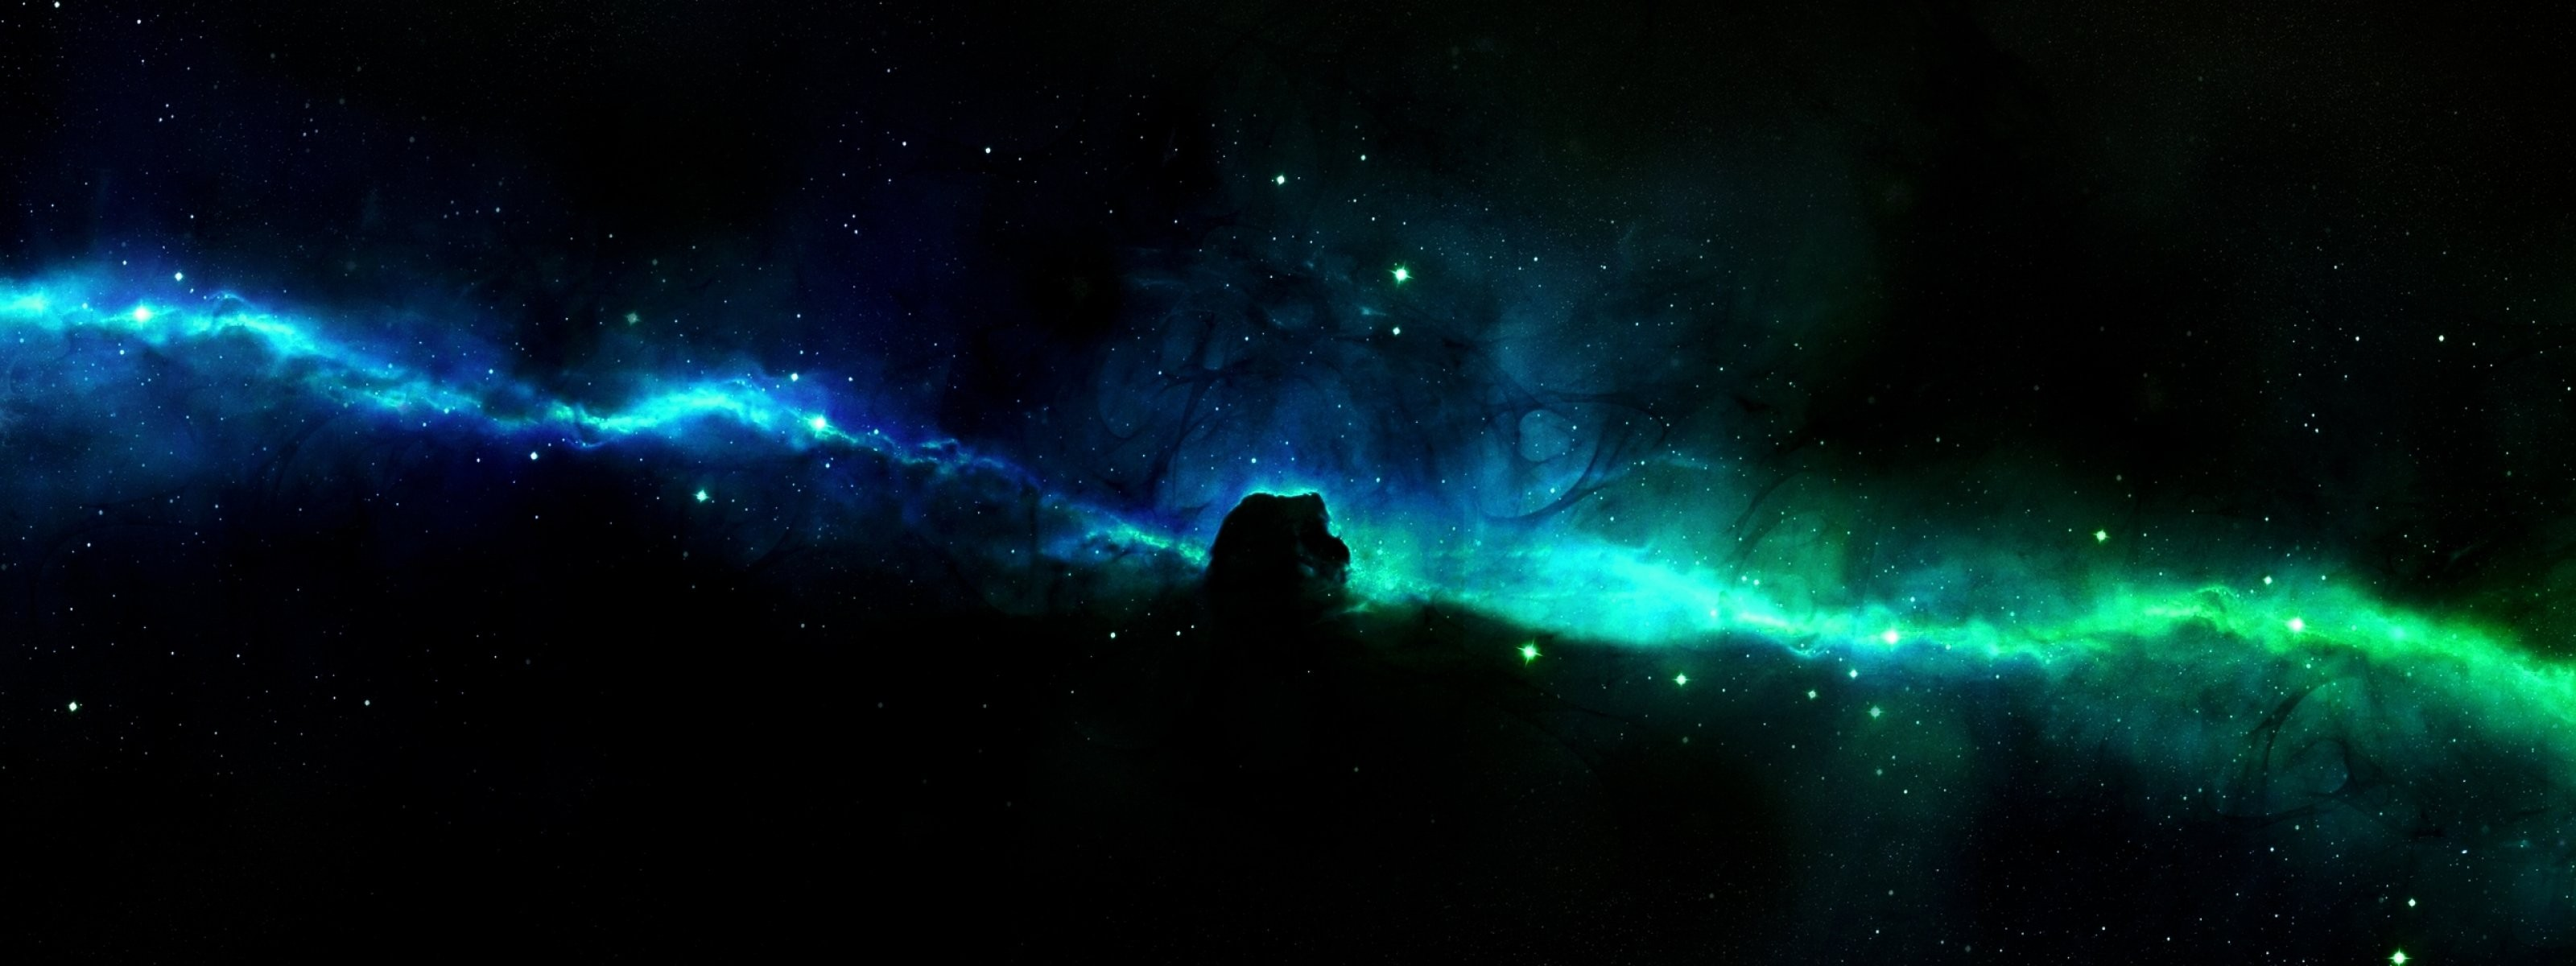 Space Dual Multi Screen Monitor Background Nature Hd - Dual Monitor Background Space - HD Wallpaper